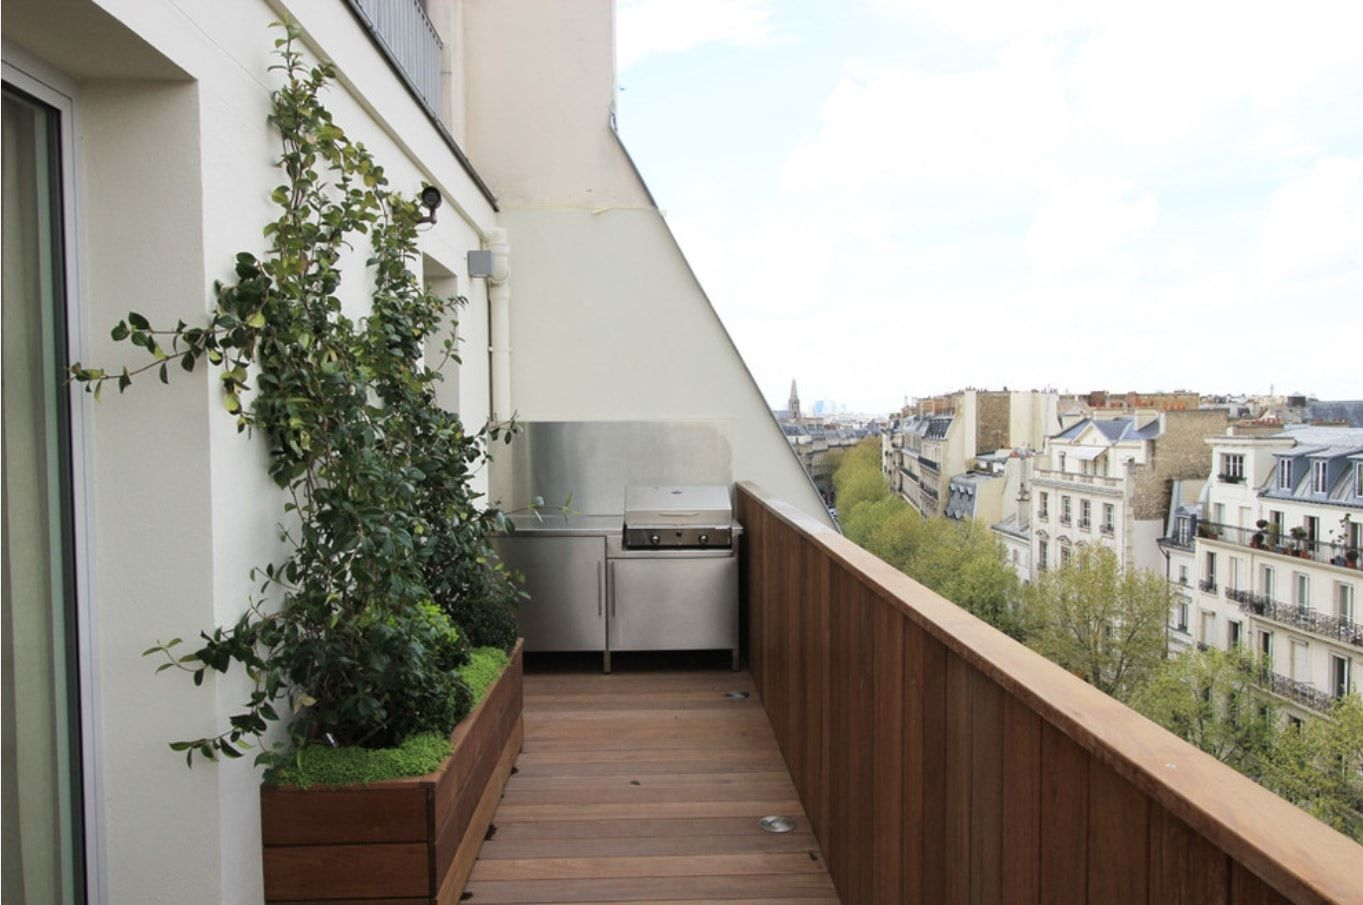 Top 10 Small Apartment Patio Ideas with Photos. Wooden trimmed patio zone at the common loggia at the facade of residential building